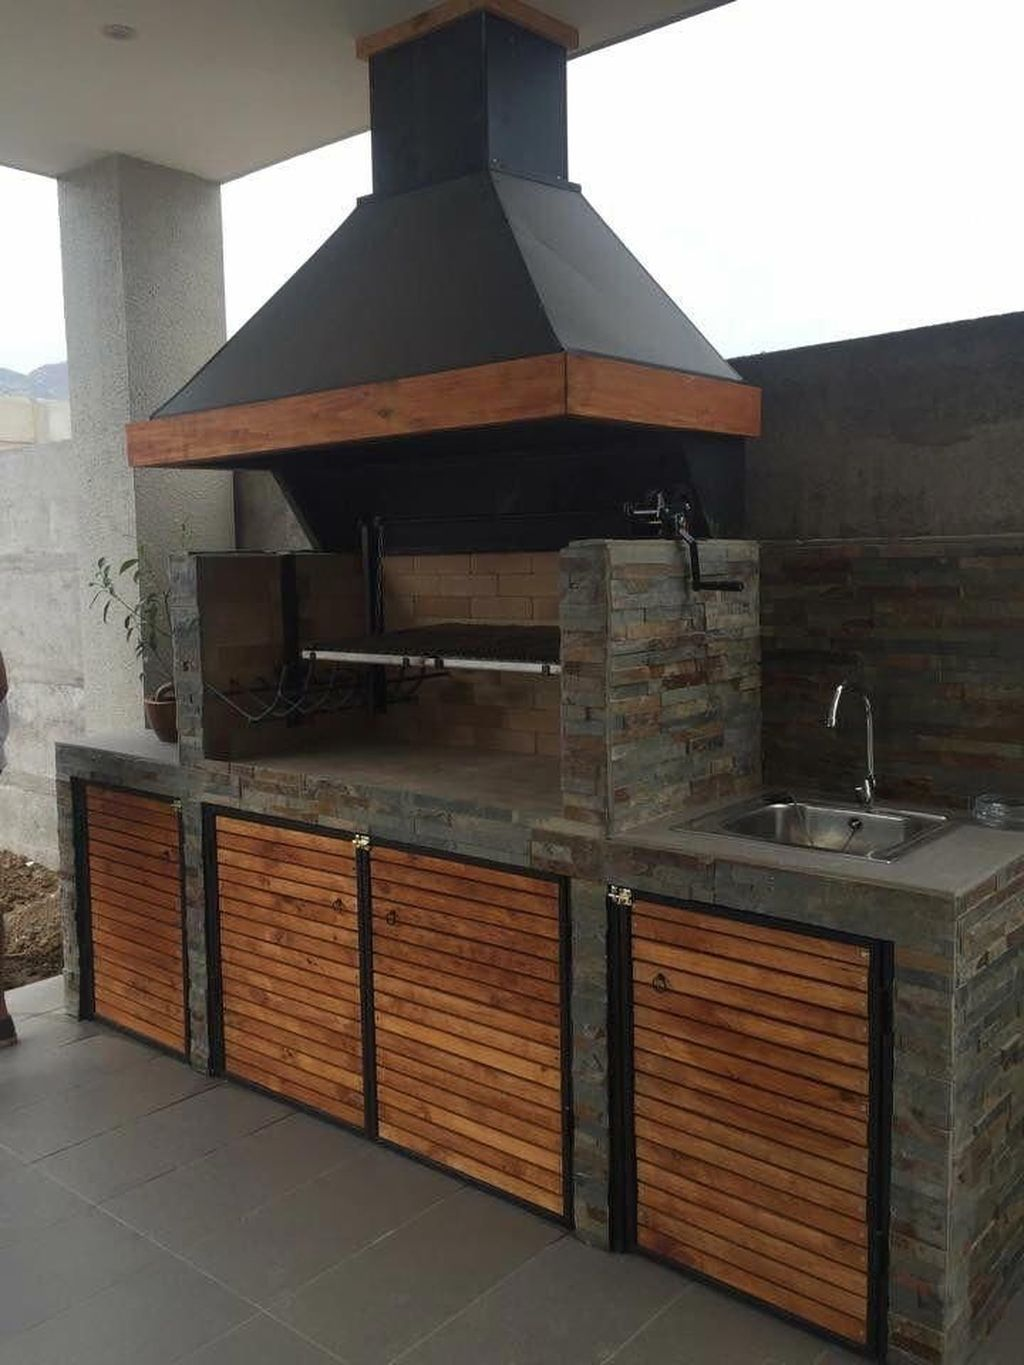 35 Fancy Outdoor Kitchens Design Ideas That You Need To Know In 2020 Diy Outdoor Kitchen Patio Fireplace Backyard Grill Ideas